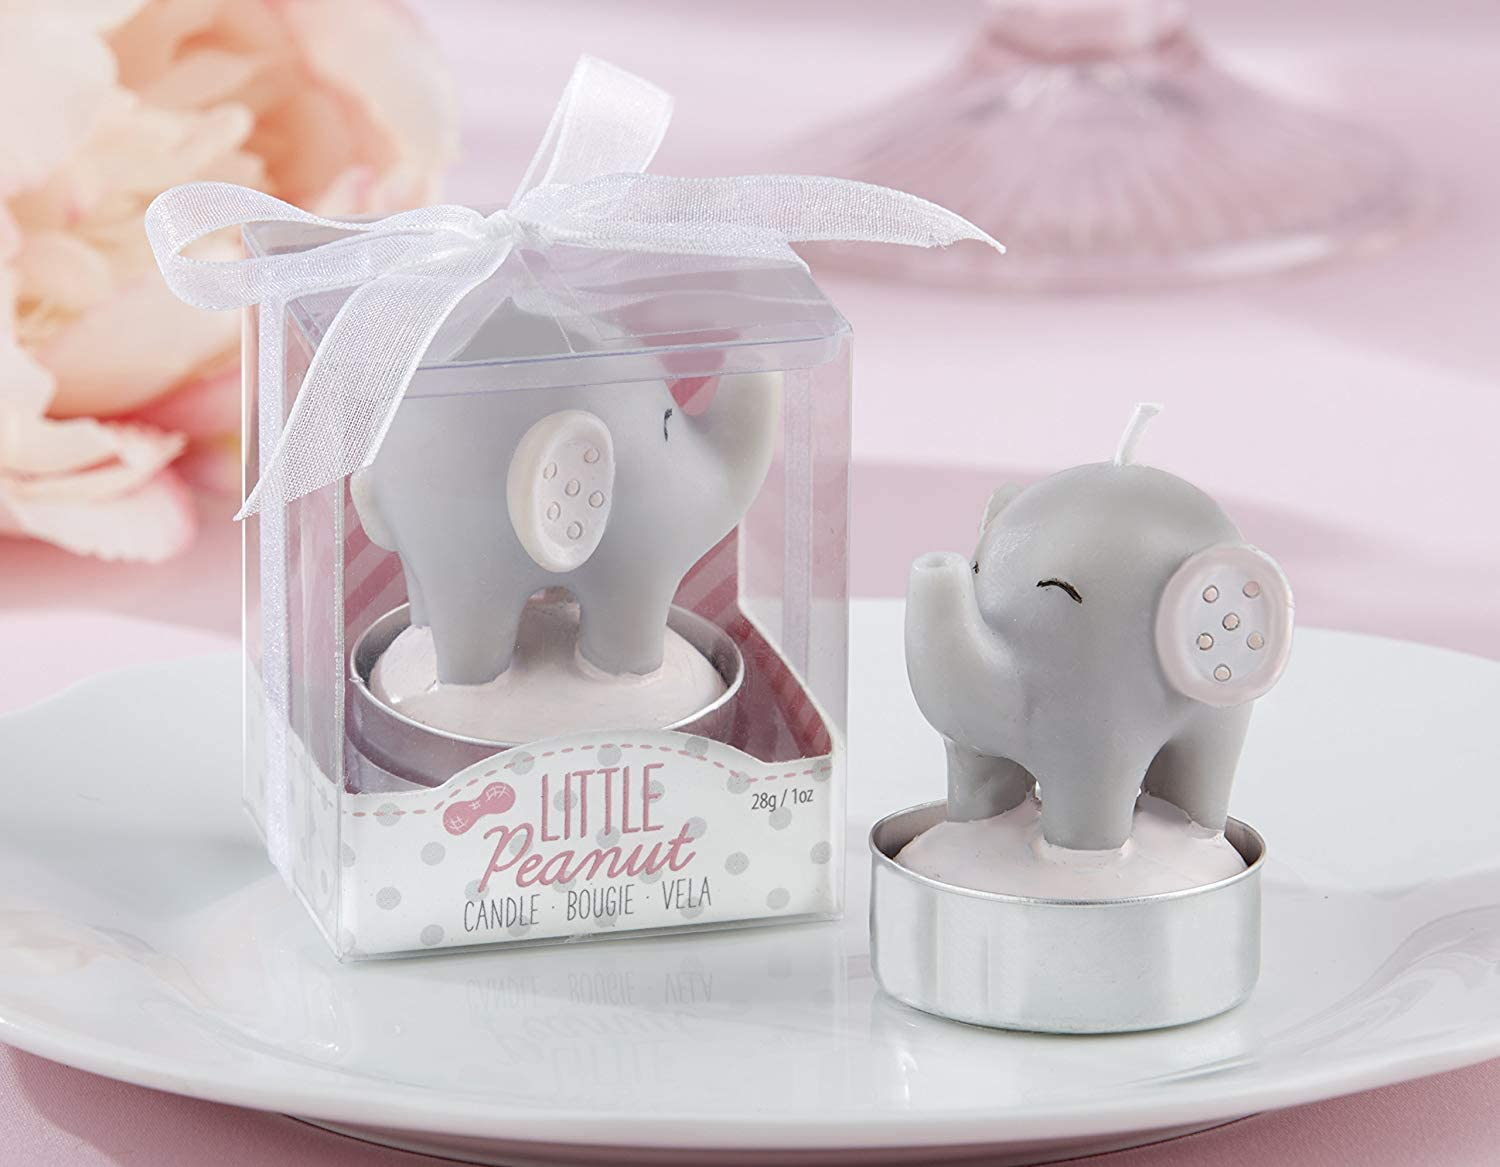 Kate Aspen Little Peanut Elephant Shaped Candle (2 Set of 4, 8 Pieces) - Guest Gift, Party Favor or Decorations for Baby Showers & Birthdays